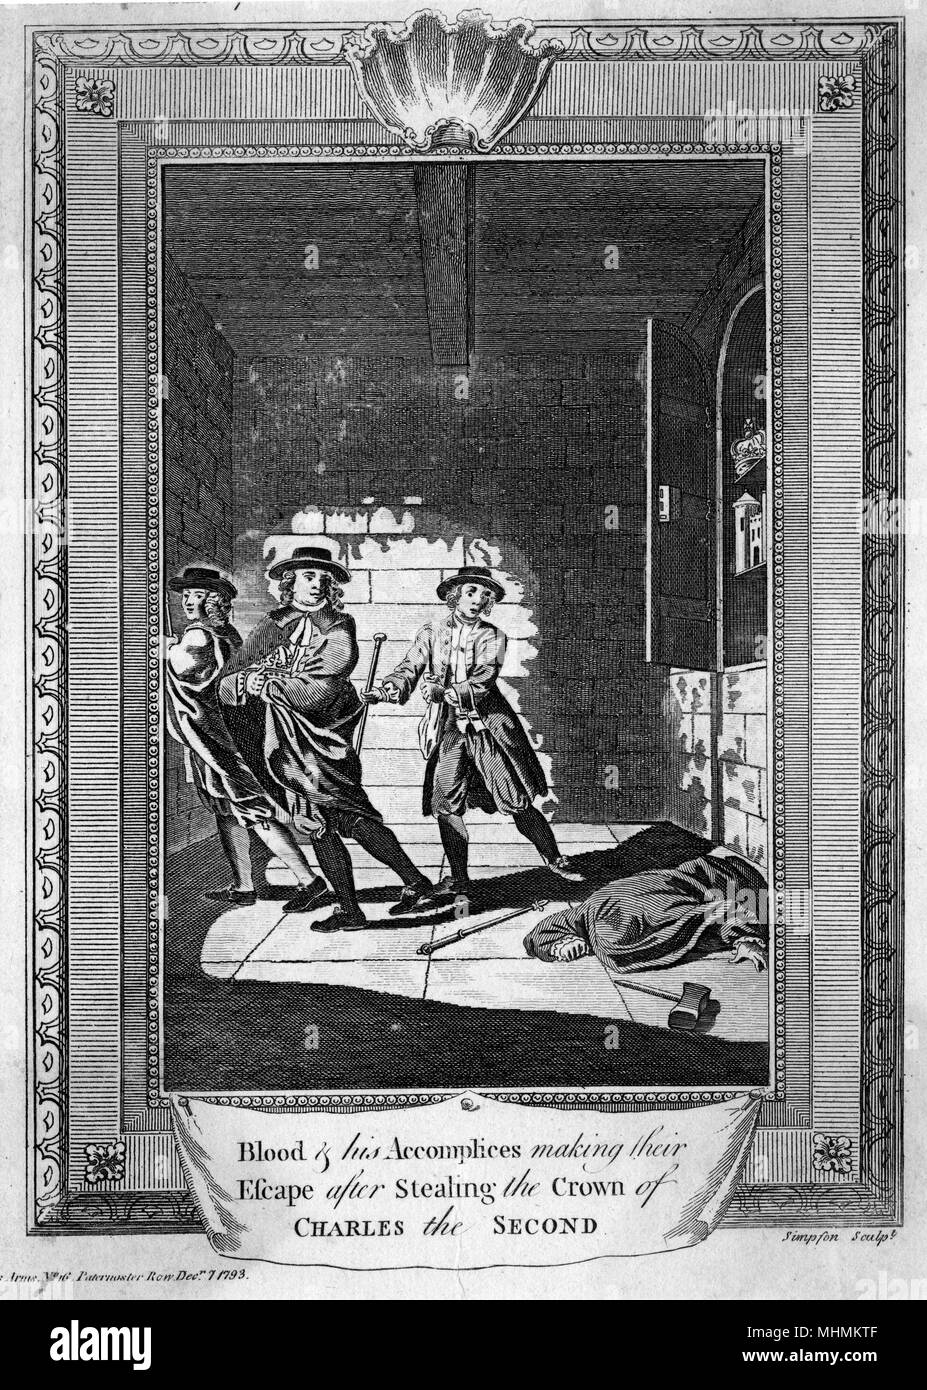 Blood & his accomplices making their escape after stealing the crown of Charles II from the Tower...      Date: Seventeenth century - Stock Image